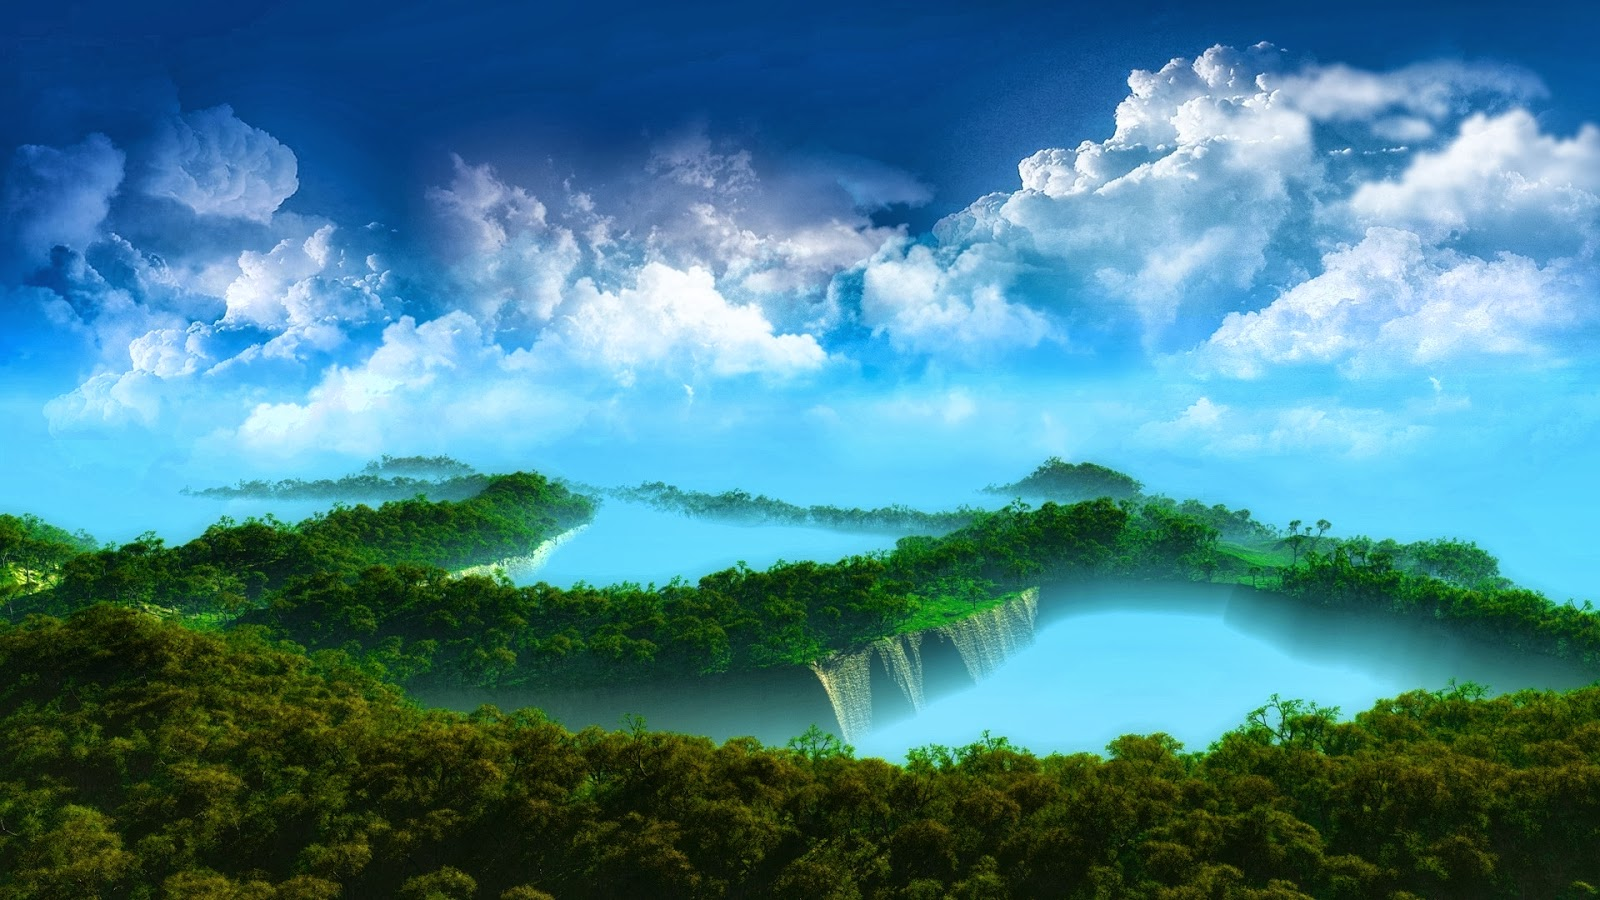 Full HD Size Nature Wallpapers Downloads Full HD High Res Nature 1600x900